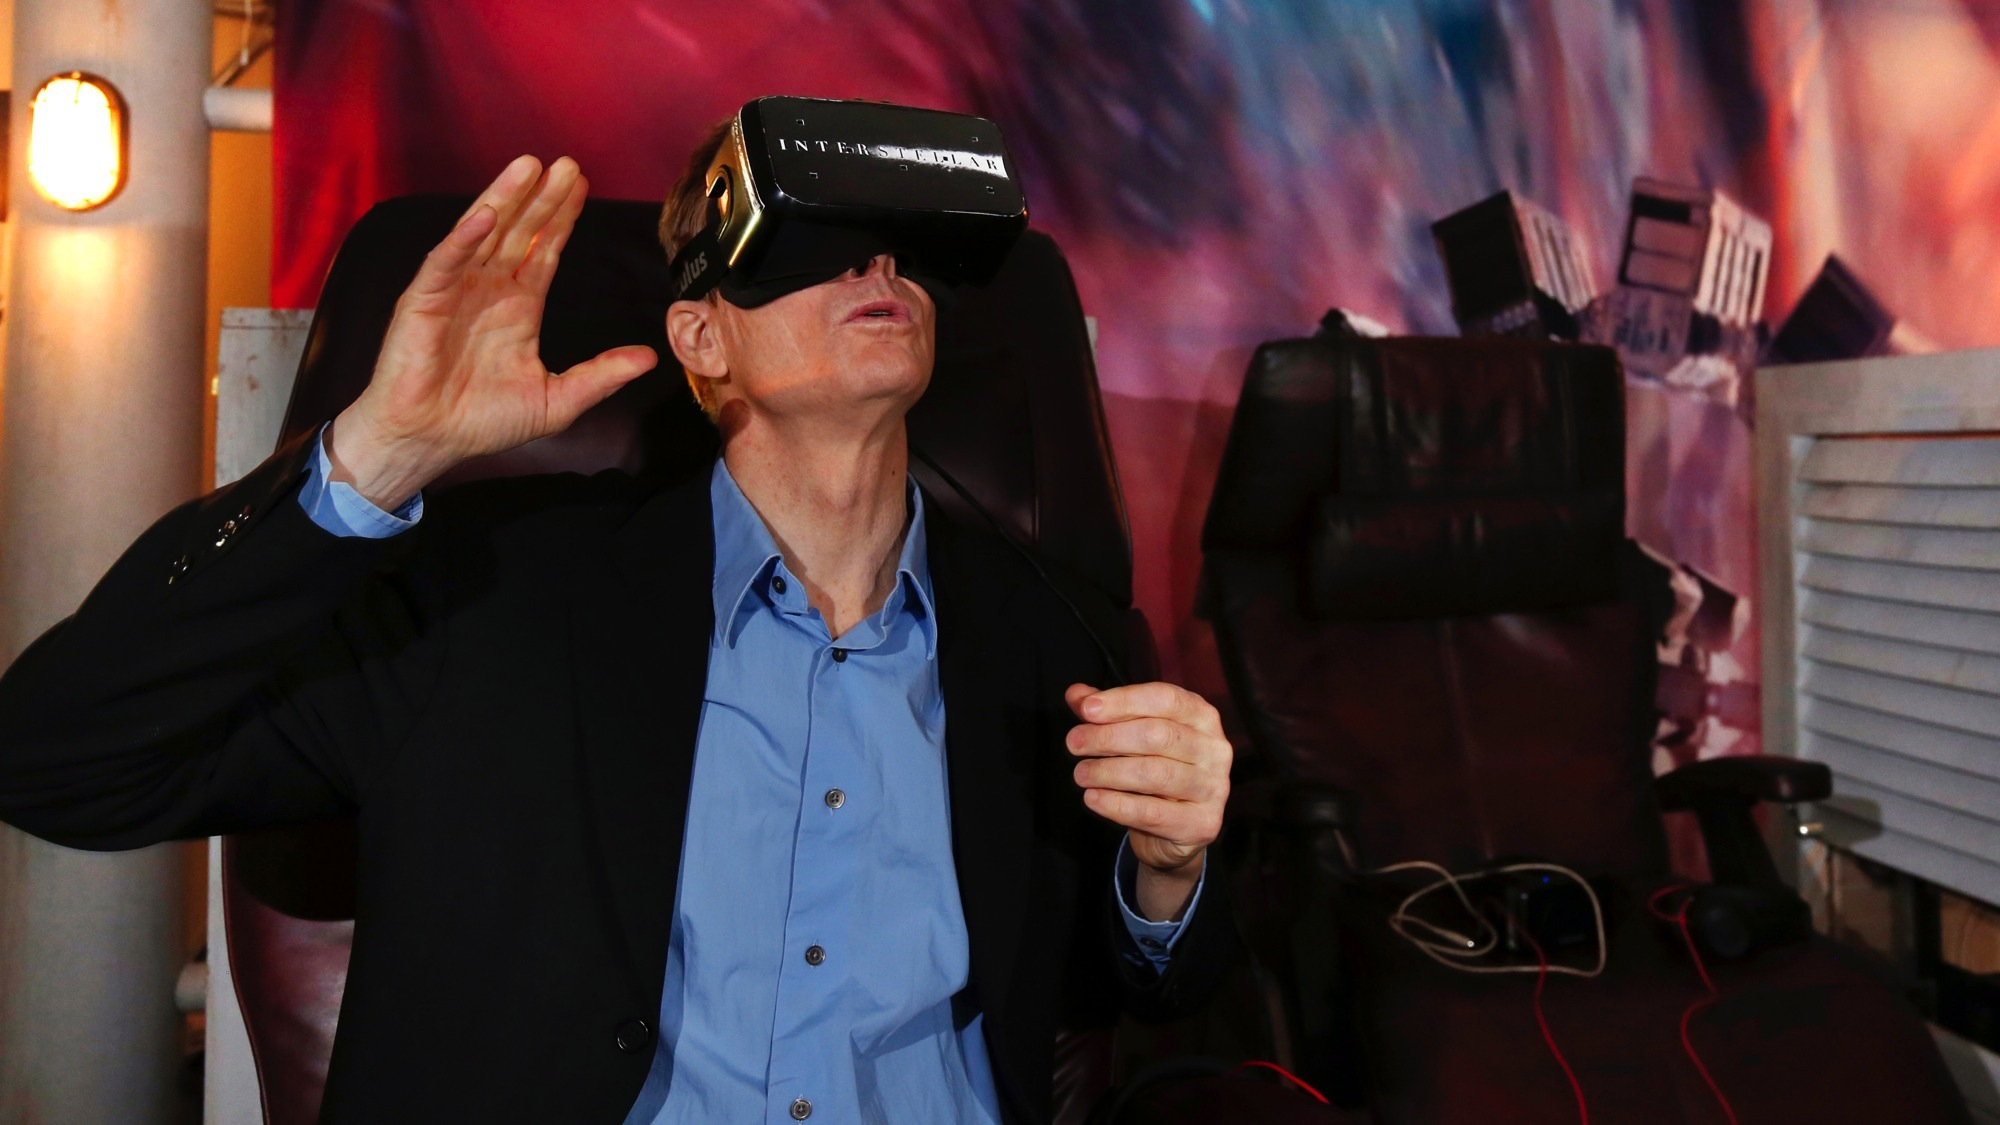 IMAGE DISTRIBUTED FOR PARAMOUNT HOME MEDIA DISTRIBUTION - Actor Bill Irwin experiences Interstellar virtual reality at SXSW, Friday, March 13, 2015, in Austin, Texas. The global blockbuster debuts on Digital HD March 17 and on Blu-ray March 31. (Photo by Jack Dempsey/Invision for Paramount Home Media Distribution/AP Images)